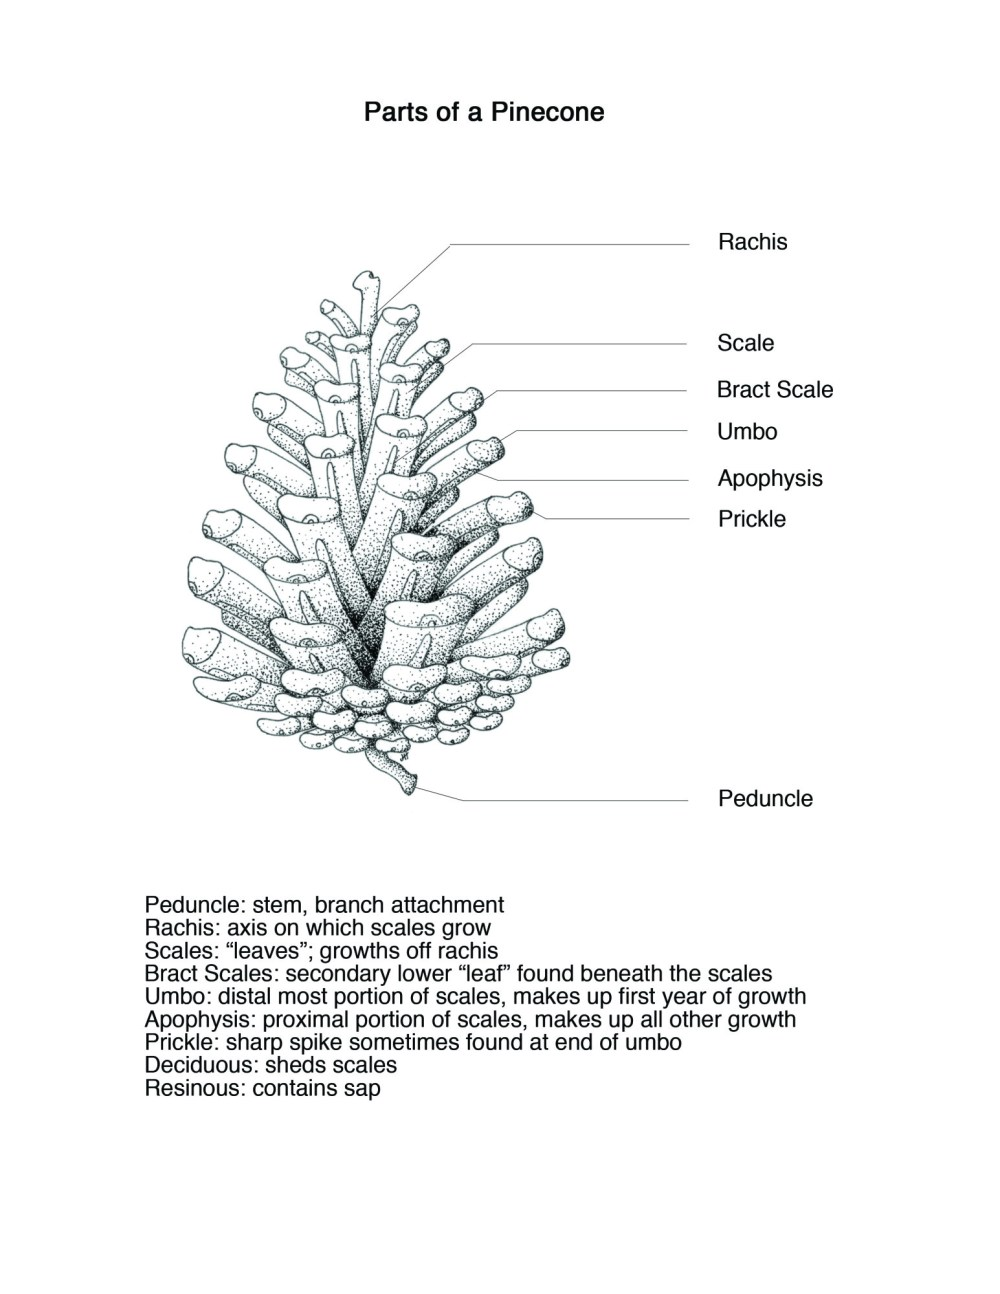 medium resolution of  incorporate all of the parts onto one individual pinecone the piece was drawn in stippled black ink with the leader lines and text added digitally